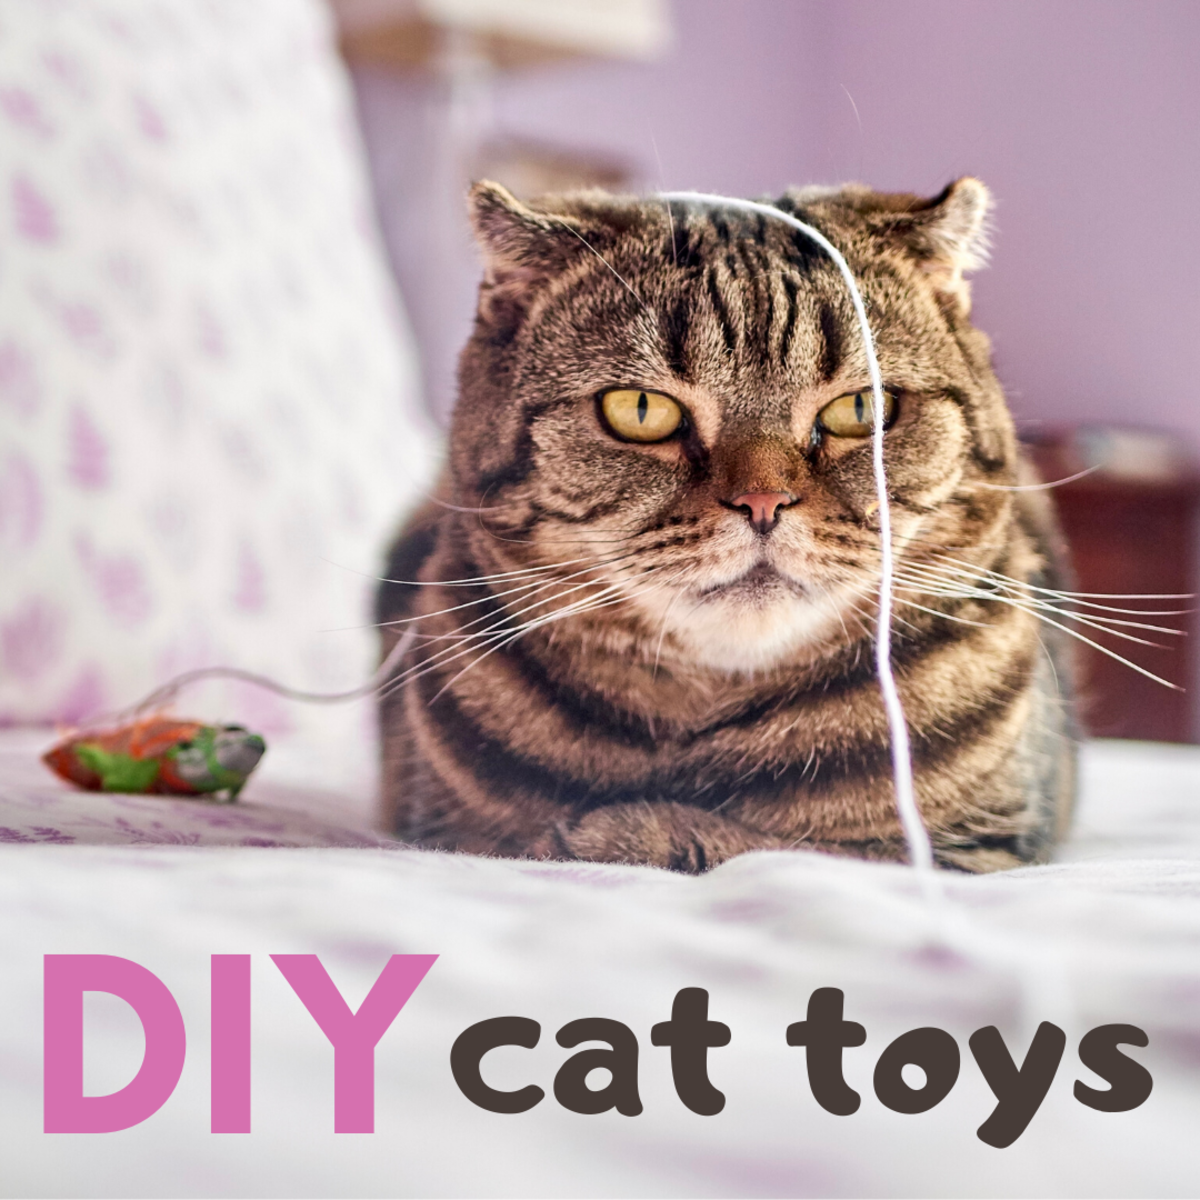 Want more great DIY cat-toy tutorials? Look no further!